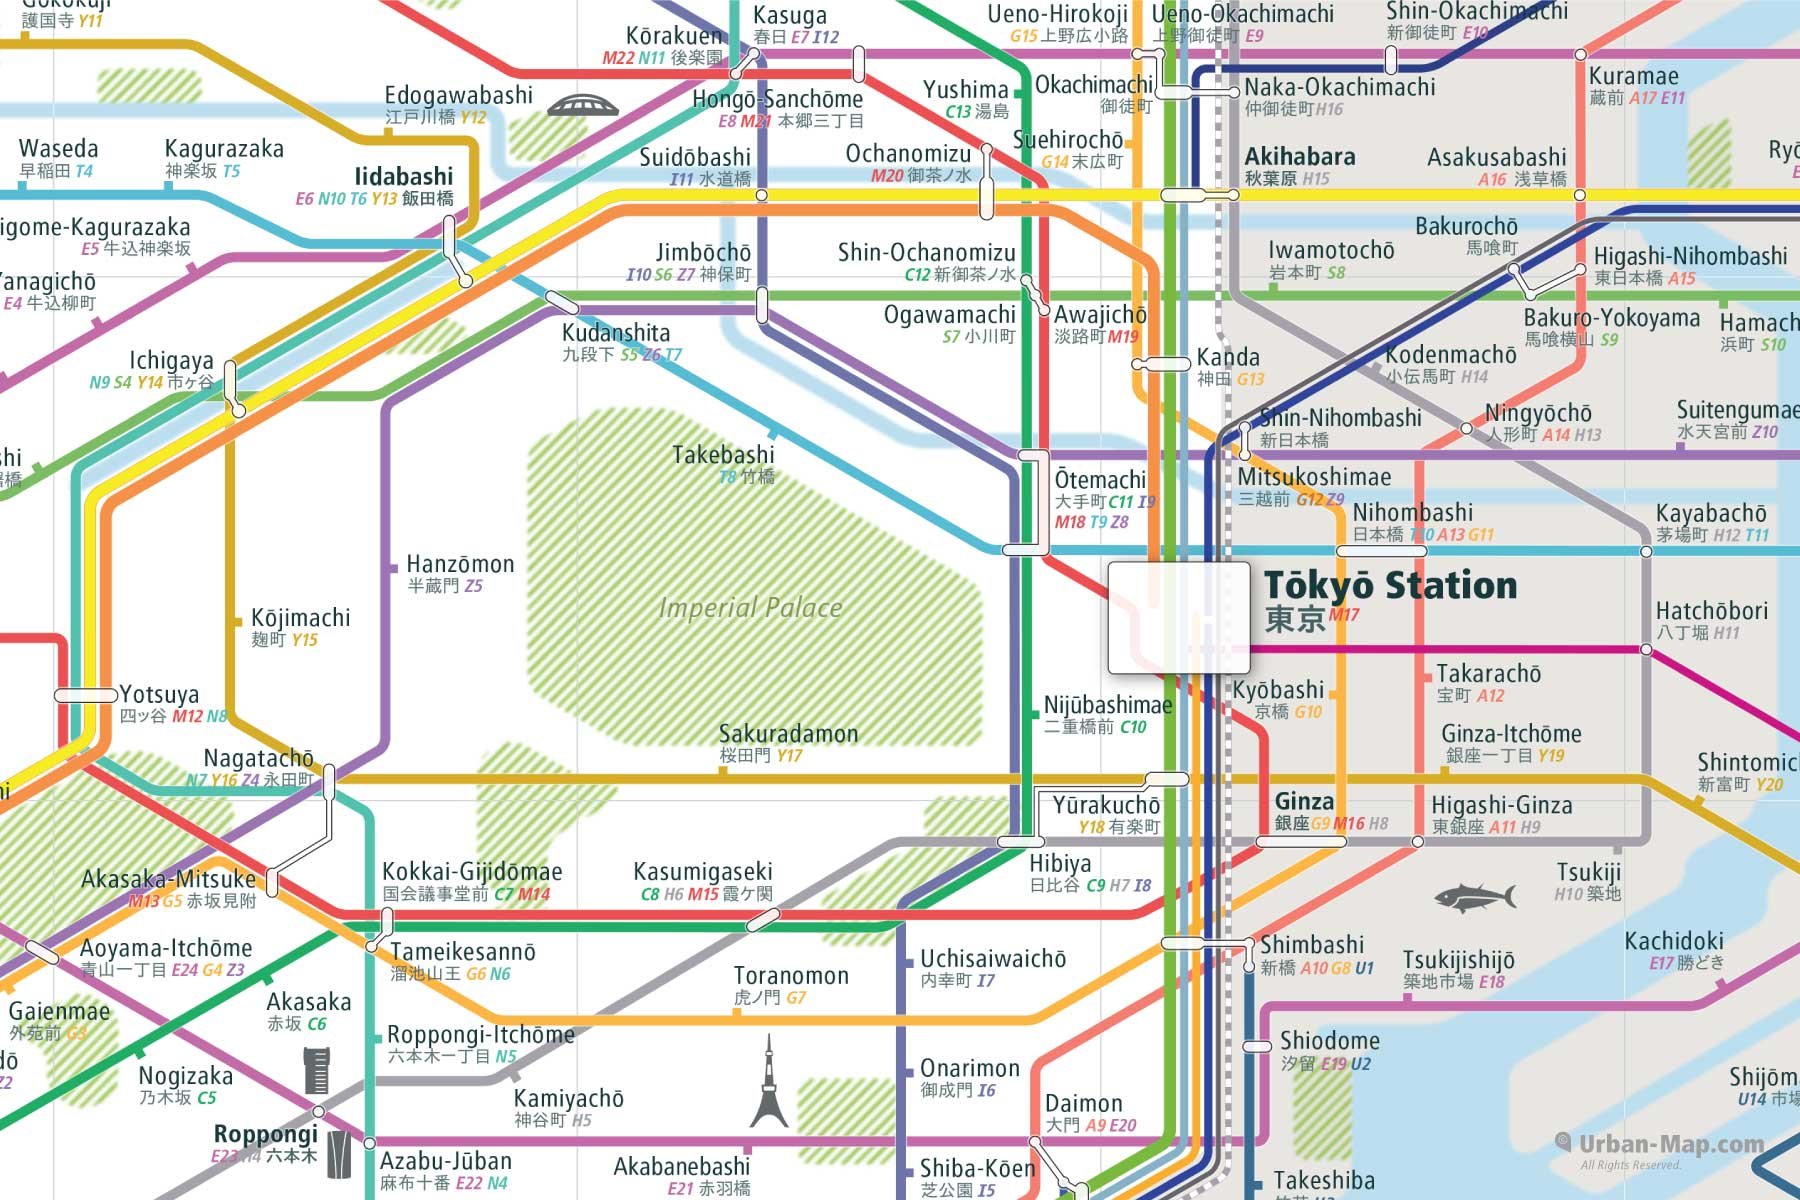 Tokyo Train Station Map Tokyo Rail Map   A Smart City Guide Map, Even Offline!